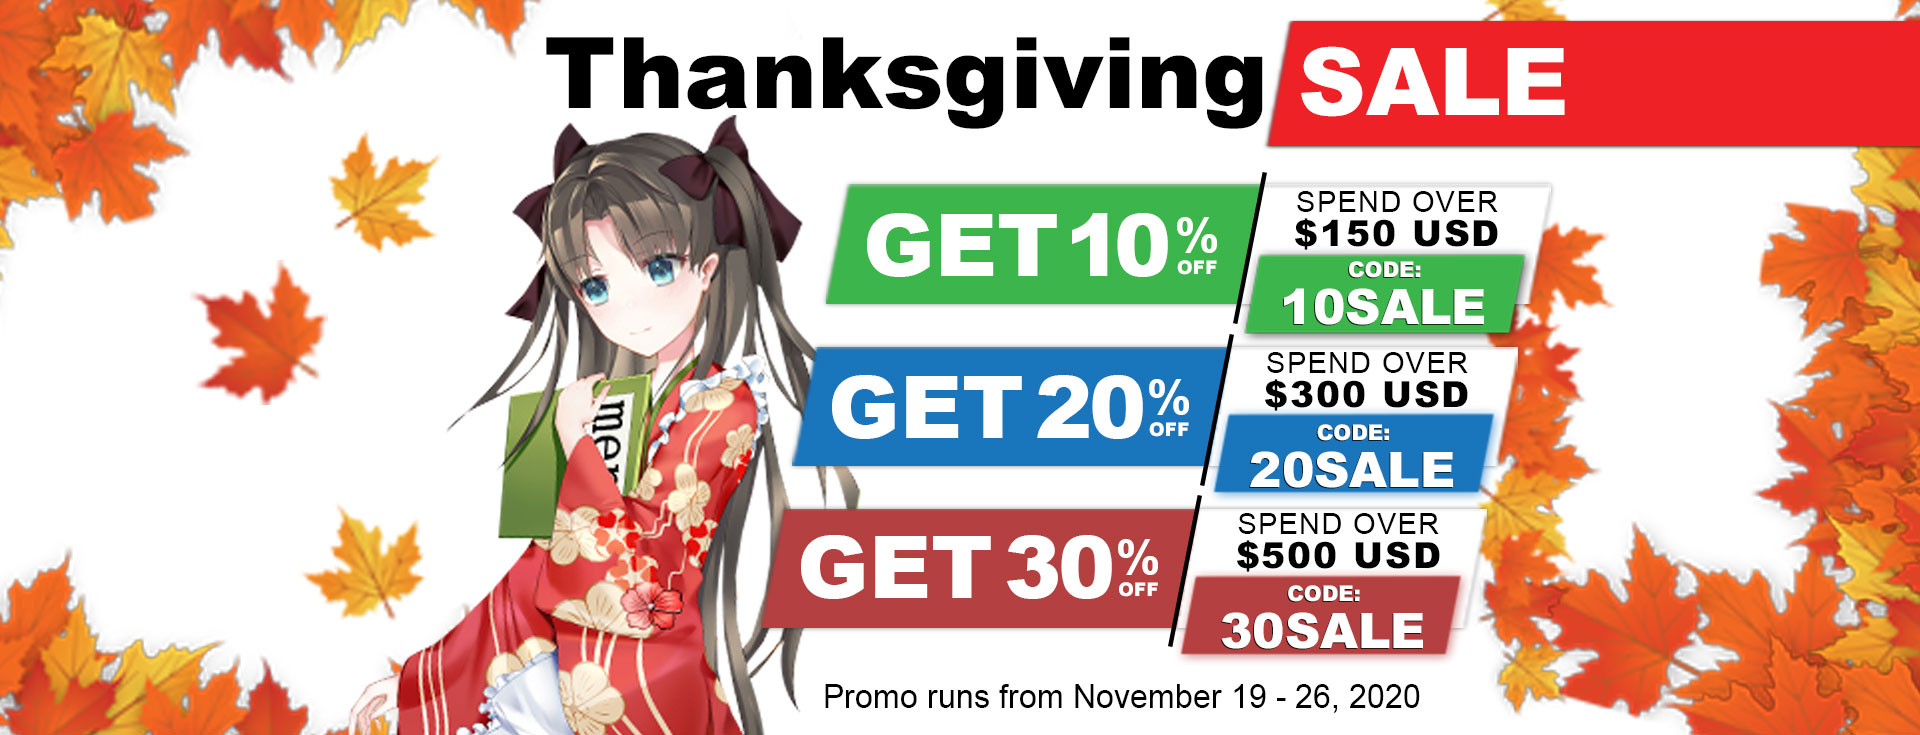 Anime Dakimakura Pillow Thanksgiving Sale